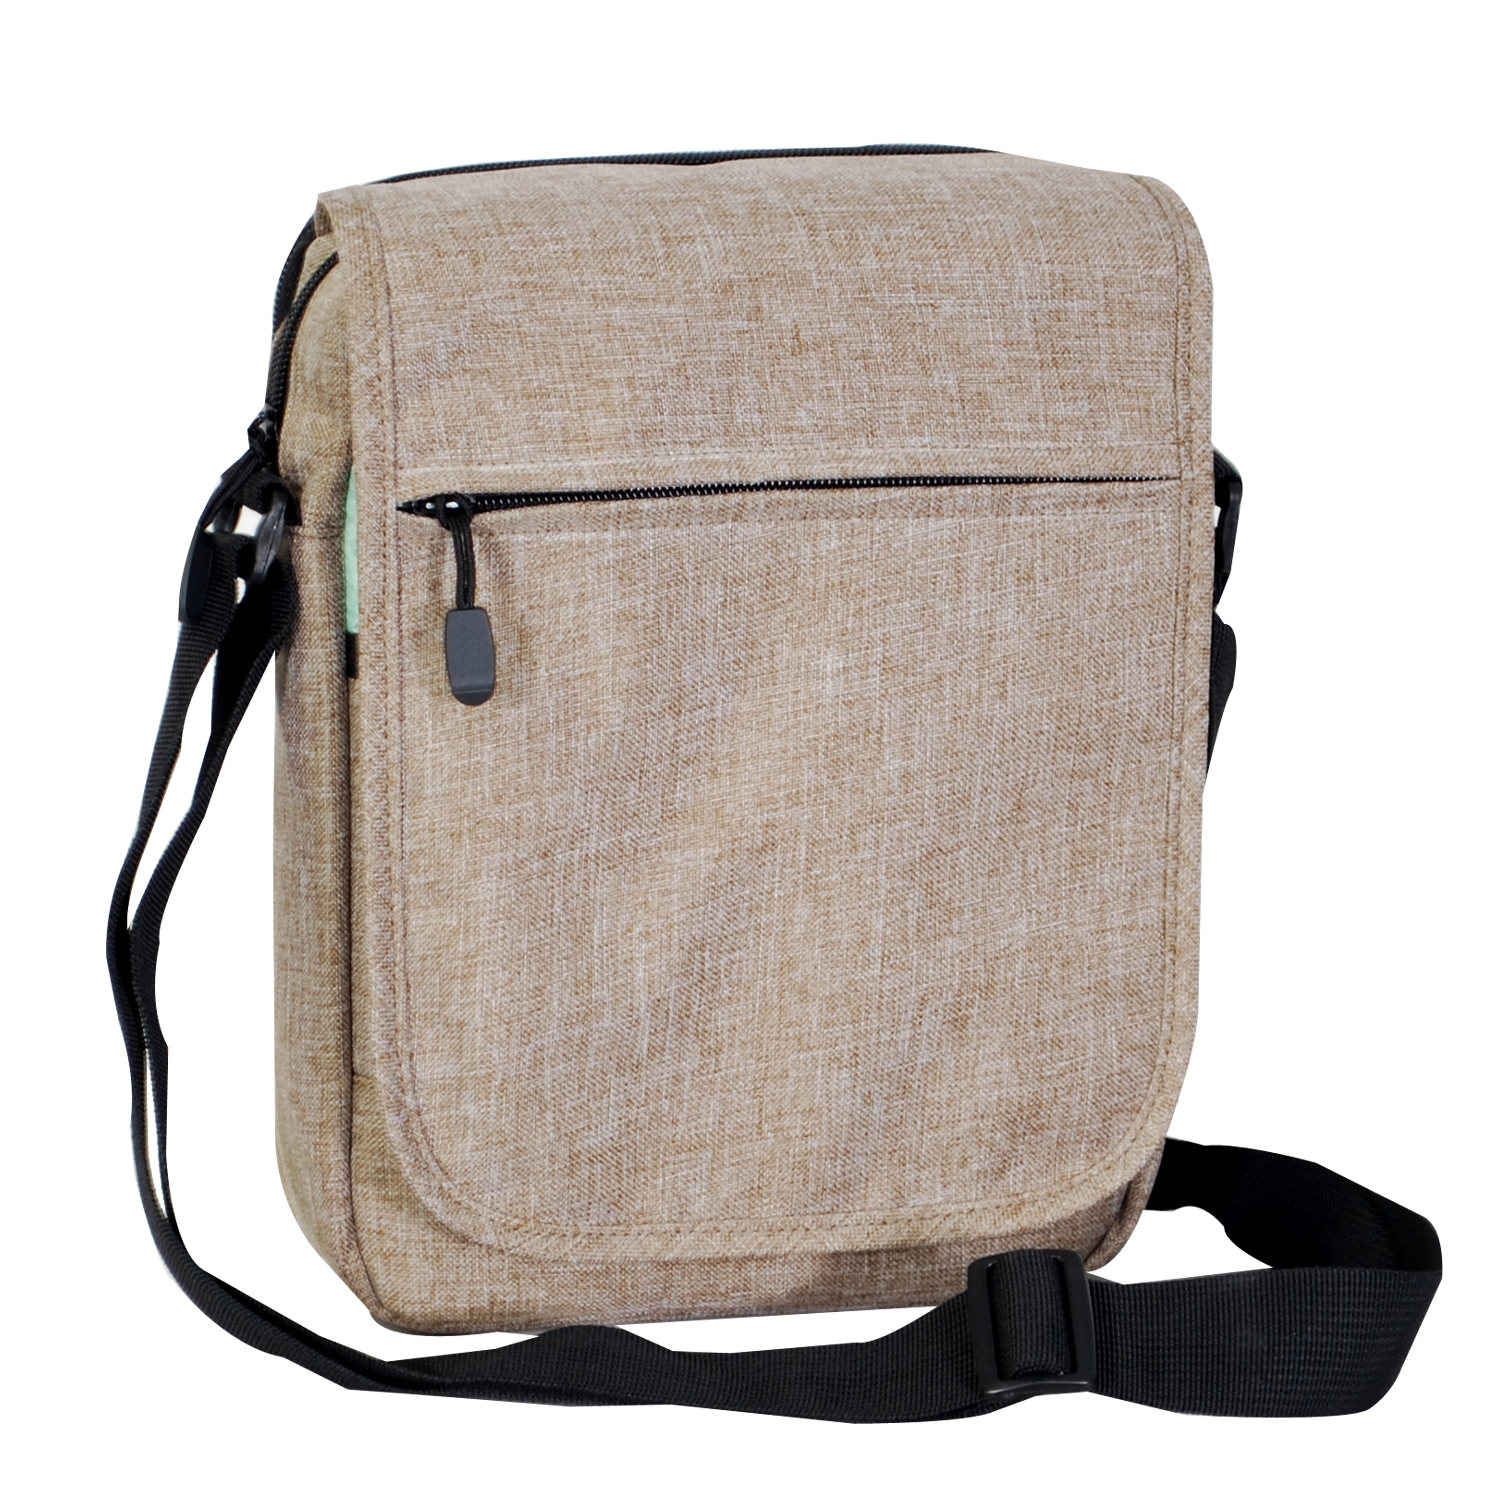 Everest Utility Bag with Tablet Pocket